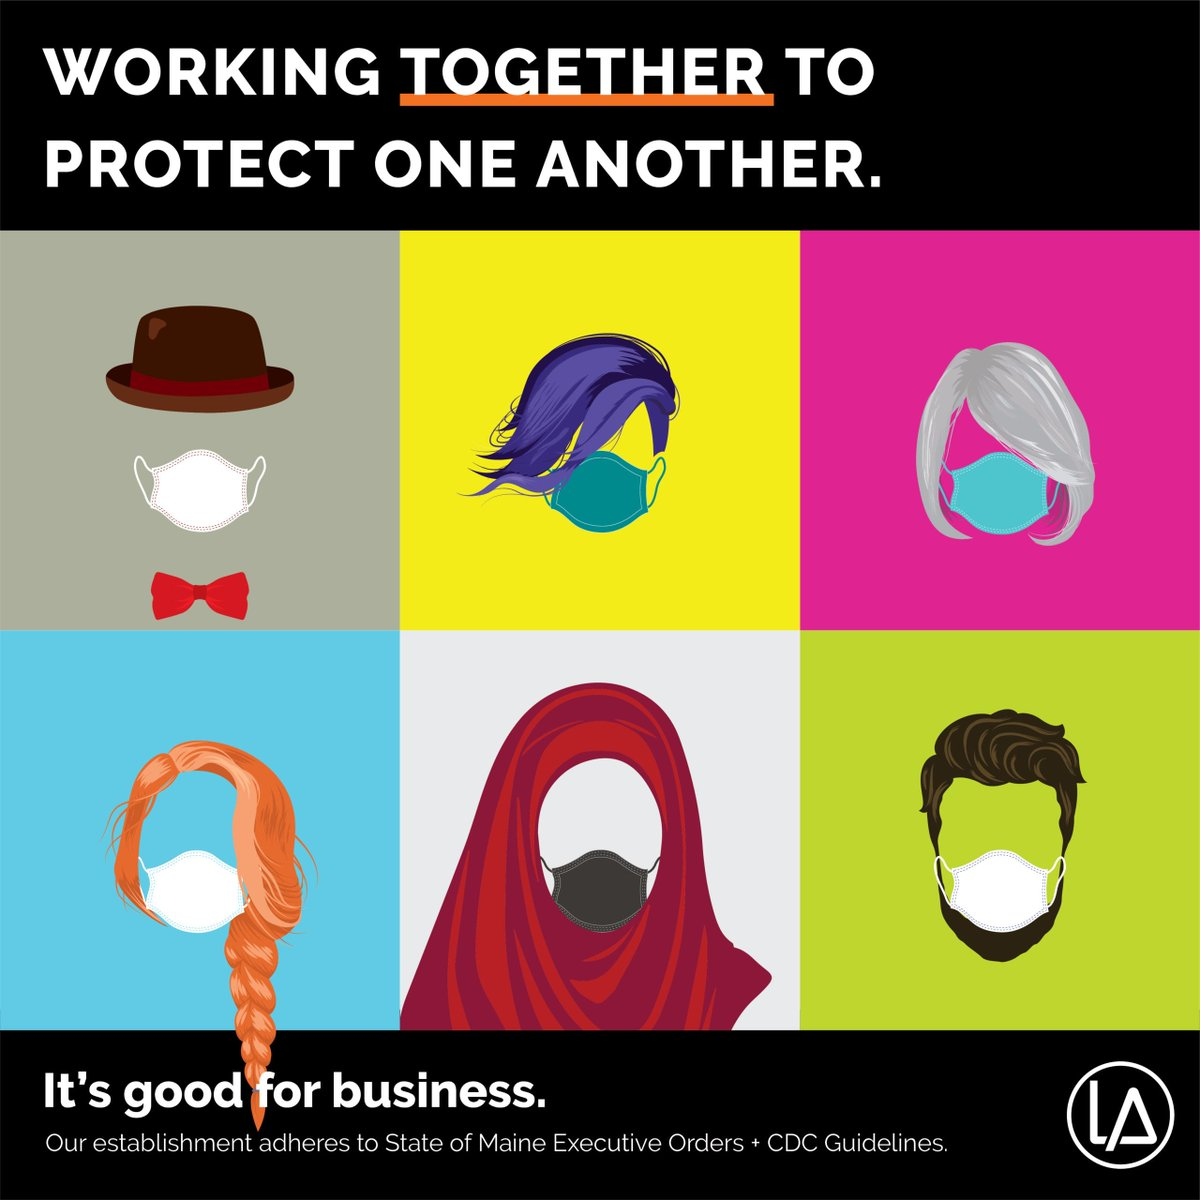 To help local businesses keep their doors open, the Cities of Auburn & Lewiston have partnered with the L-A Metropolitan Chamber of Commerce. We are all working together to protect one another. So, mask up, Auburn. It's good for business! @LewistonMeGov @LAMetroChamber